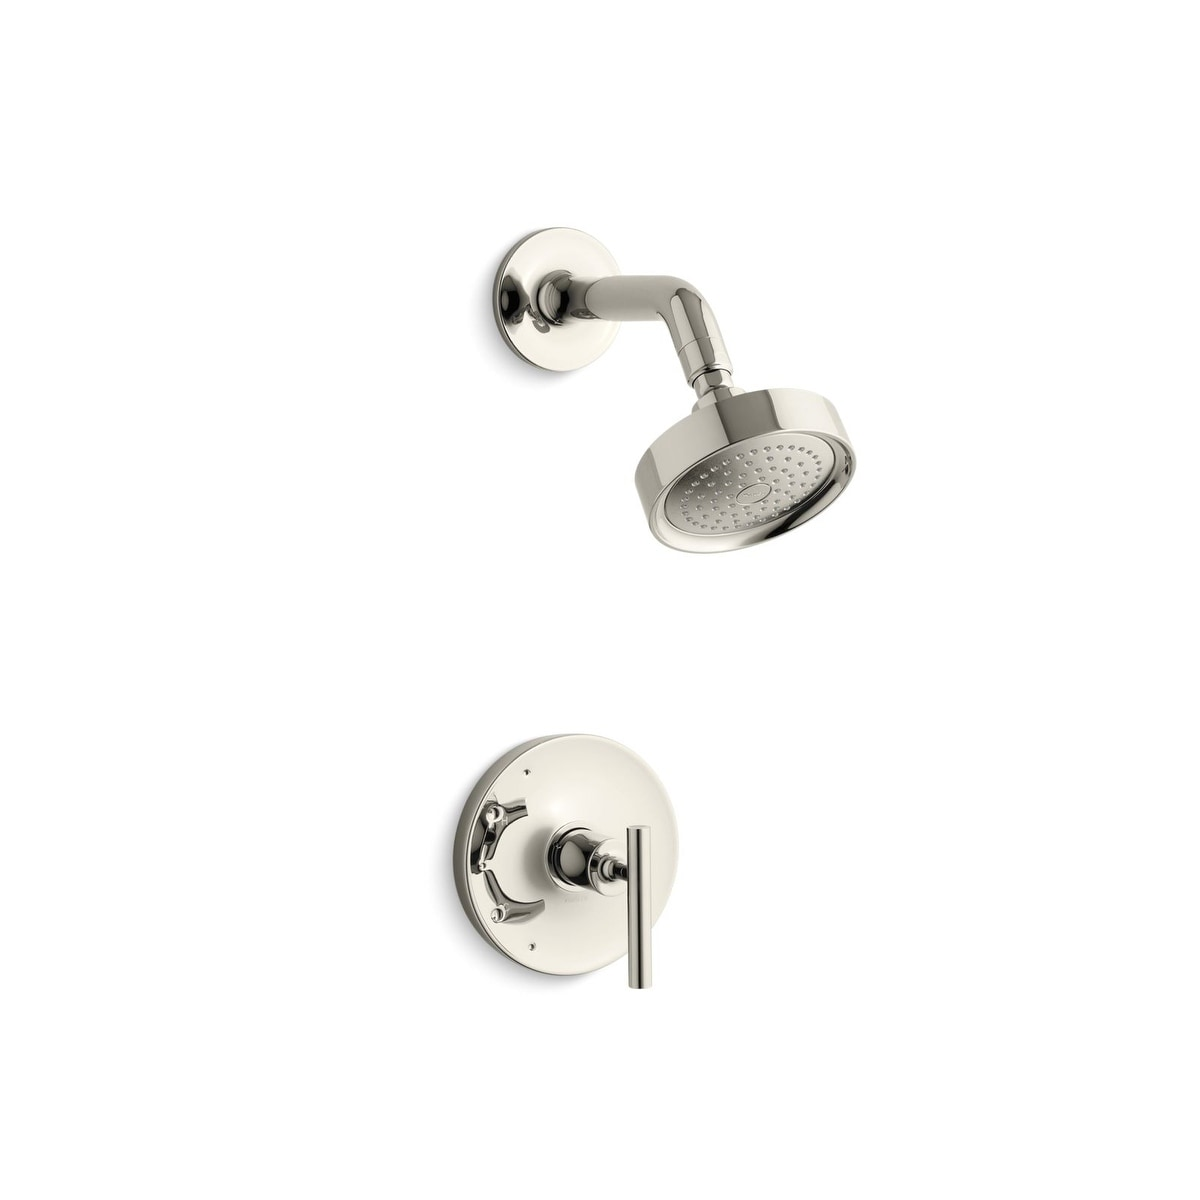 Kohler K Ts14422 4 Purist Rite Temp Shower Valve Trim With Lever Handle And 2 5 Gpm Showerhead